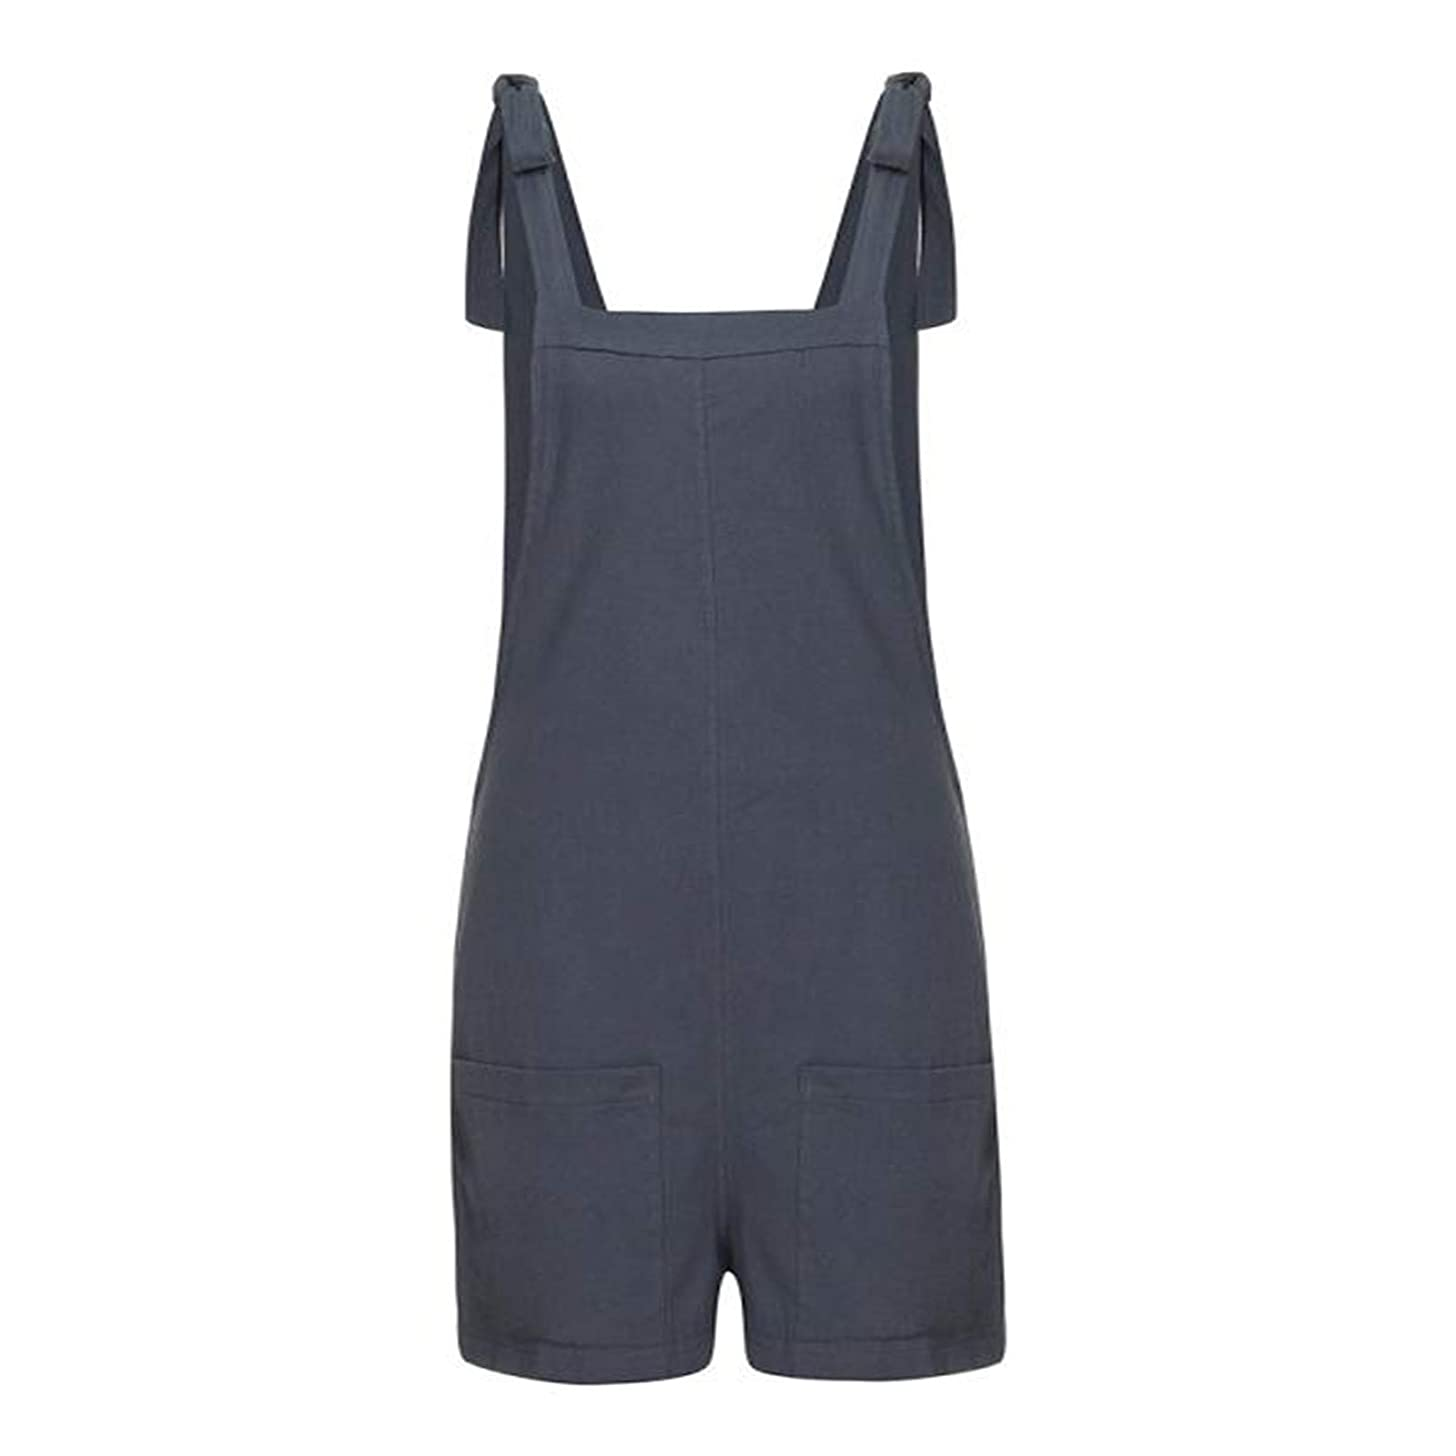 Thenxin Women's Overalls Tie Knot Straps Casual Jumpsuits Shorts Pants Romper with Pockets